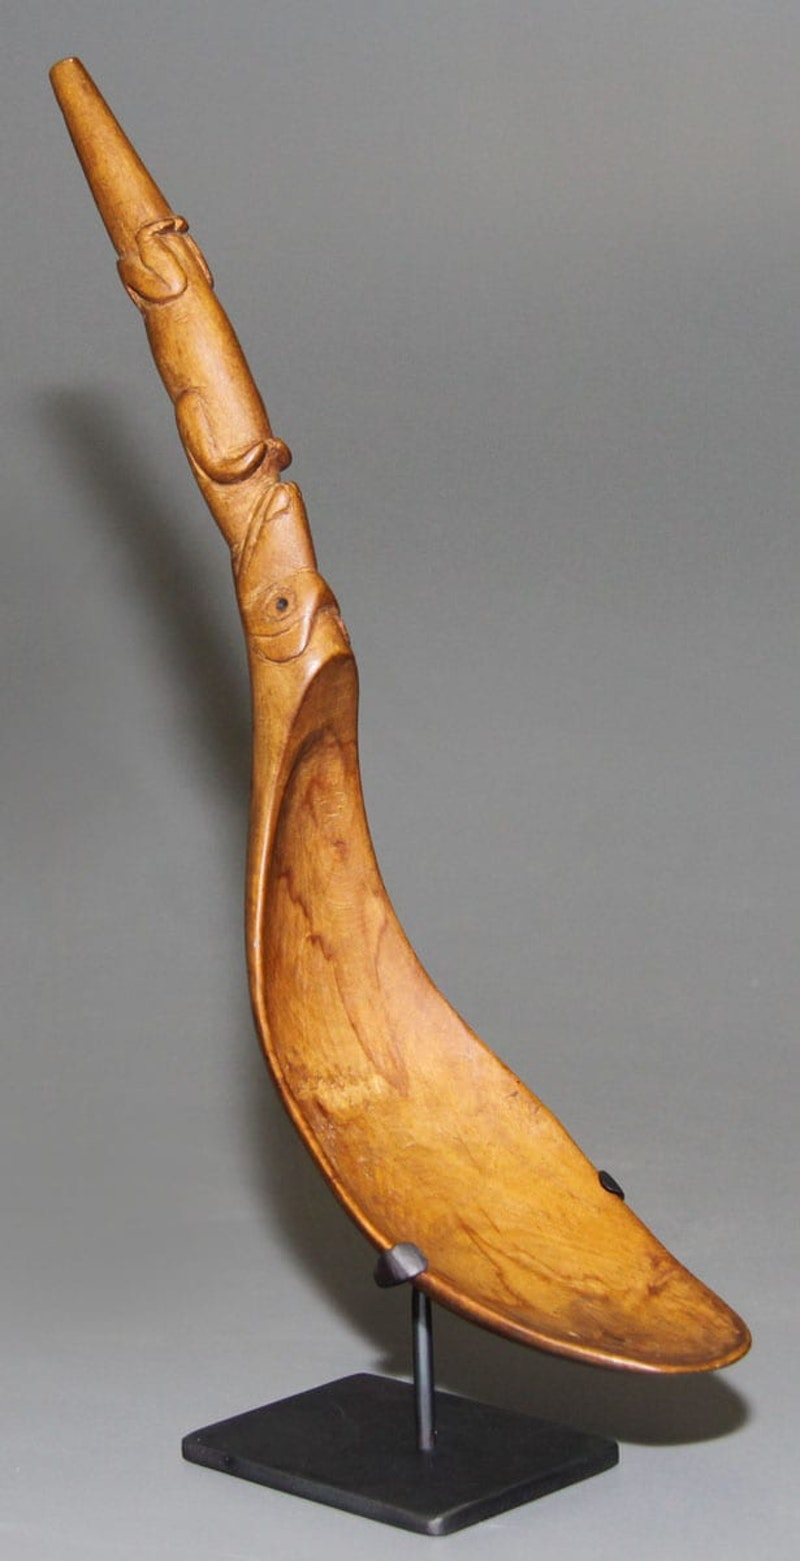 Wooden Spoon with Figure Motif